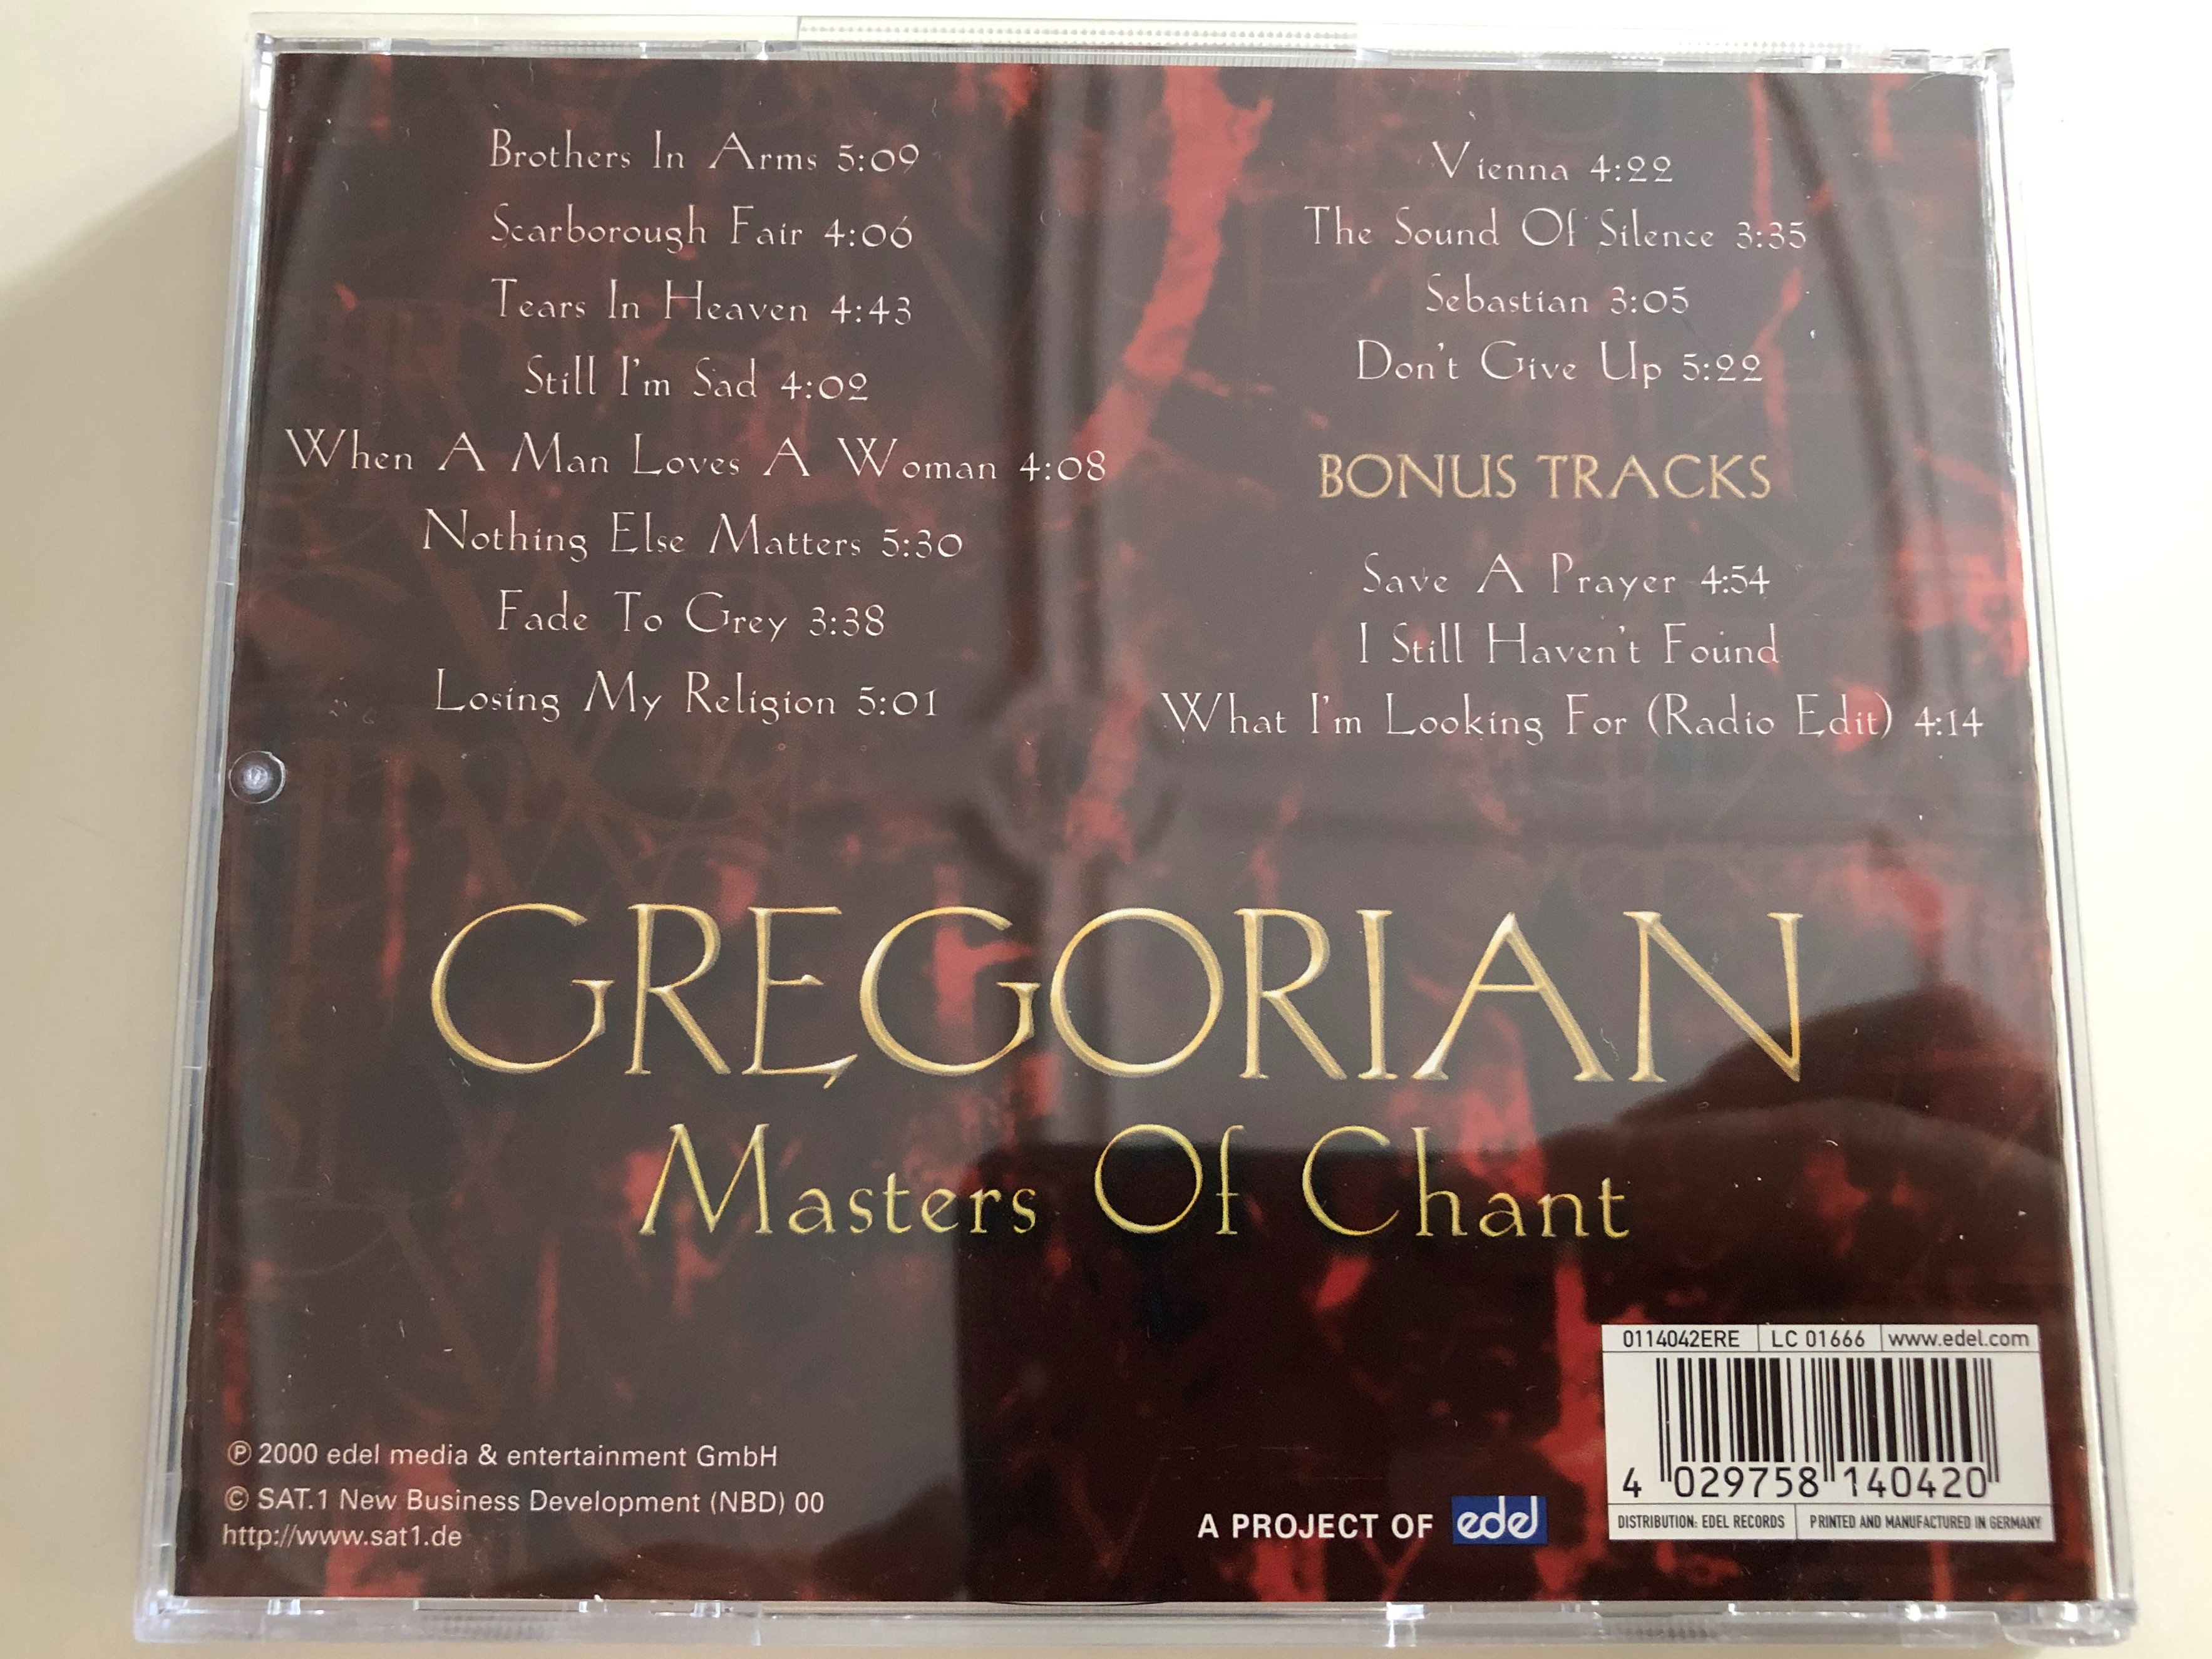 gregorian-masters-of-chant-brothers-in-arms-still-i-m-sad-vienna-don-t-give-up-audio-cd-2000-edel-gregorian-versions-of-popular-songs-6-.jpg